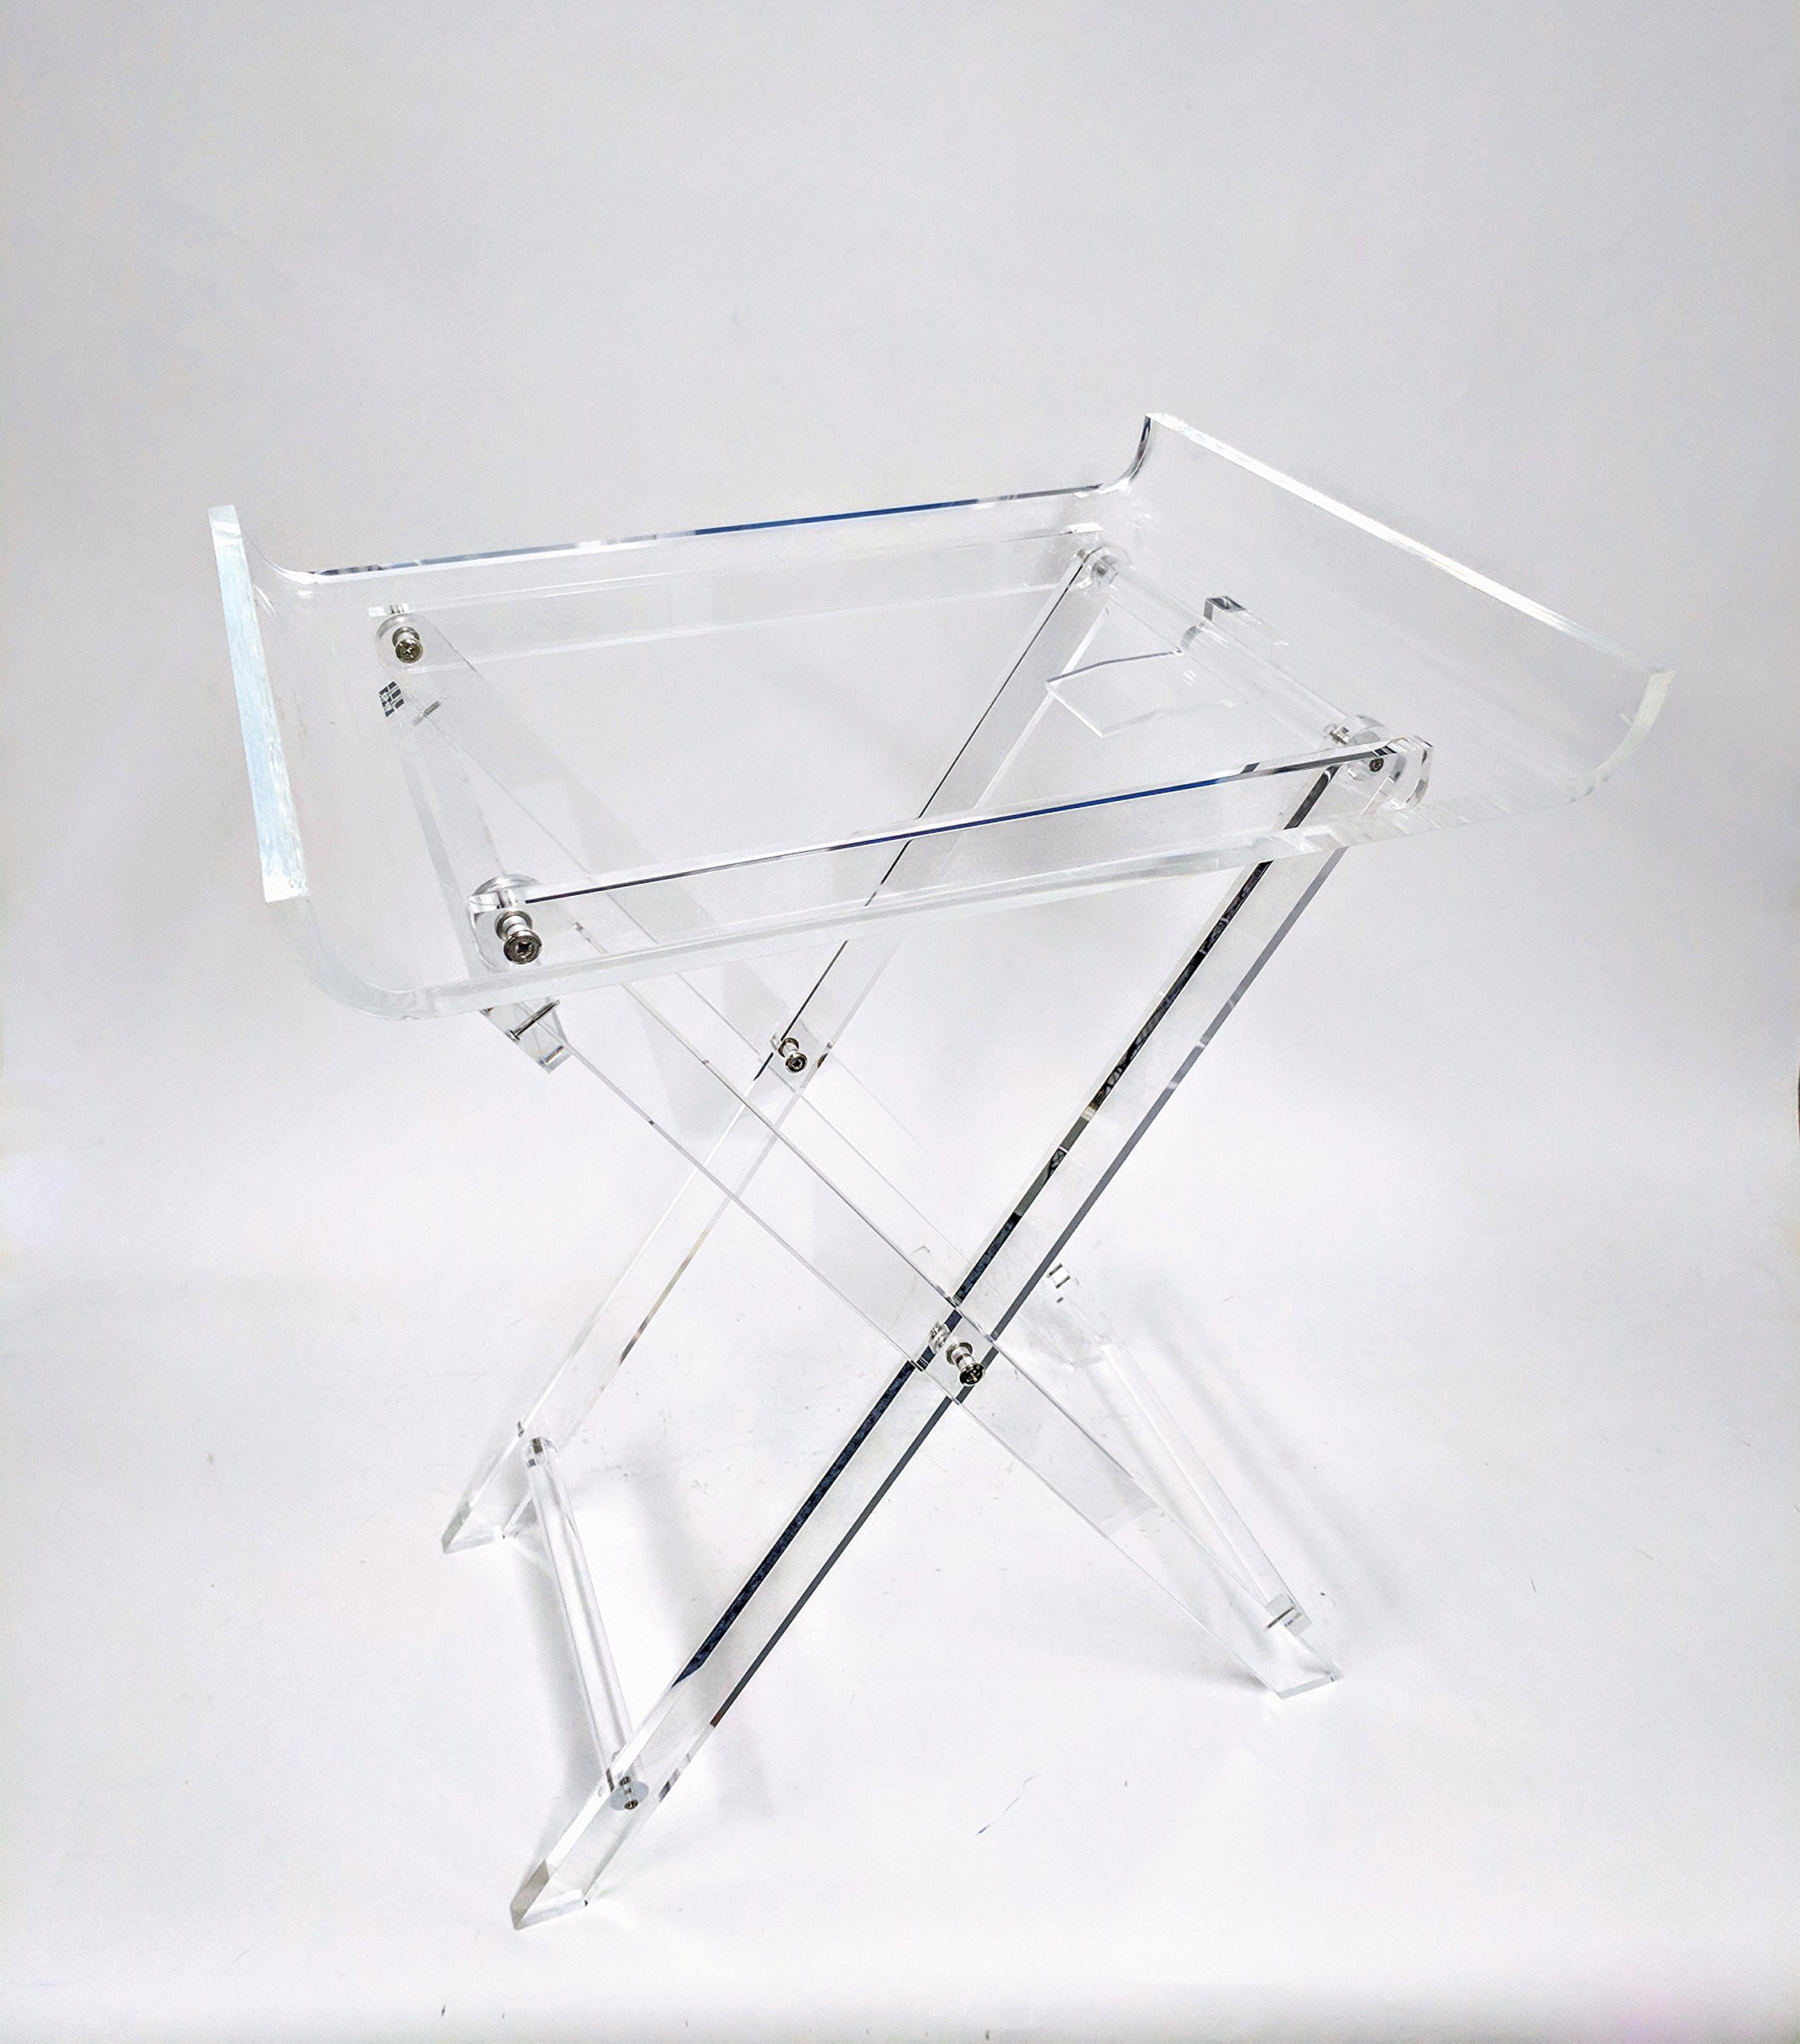 Designstyles Acrylic Folding Tray Table - Modern Chic Accent Desk - Kitchen and Bar Serving Table - Elegant Clear Design by Designstyles